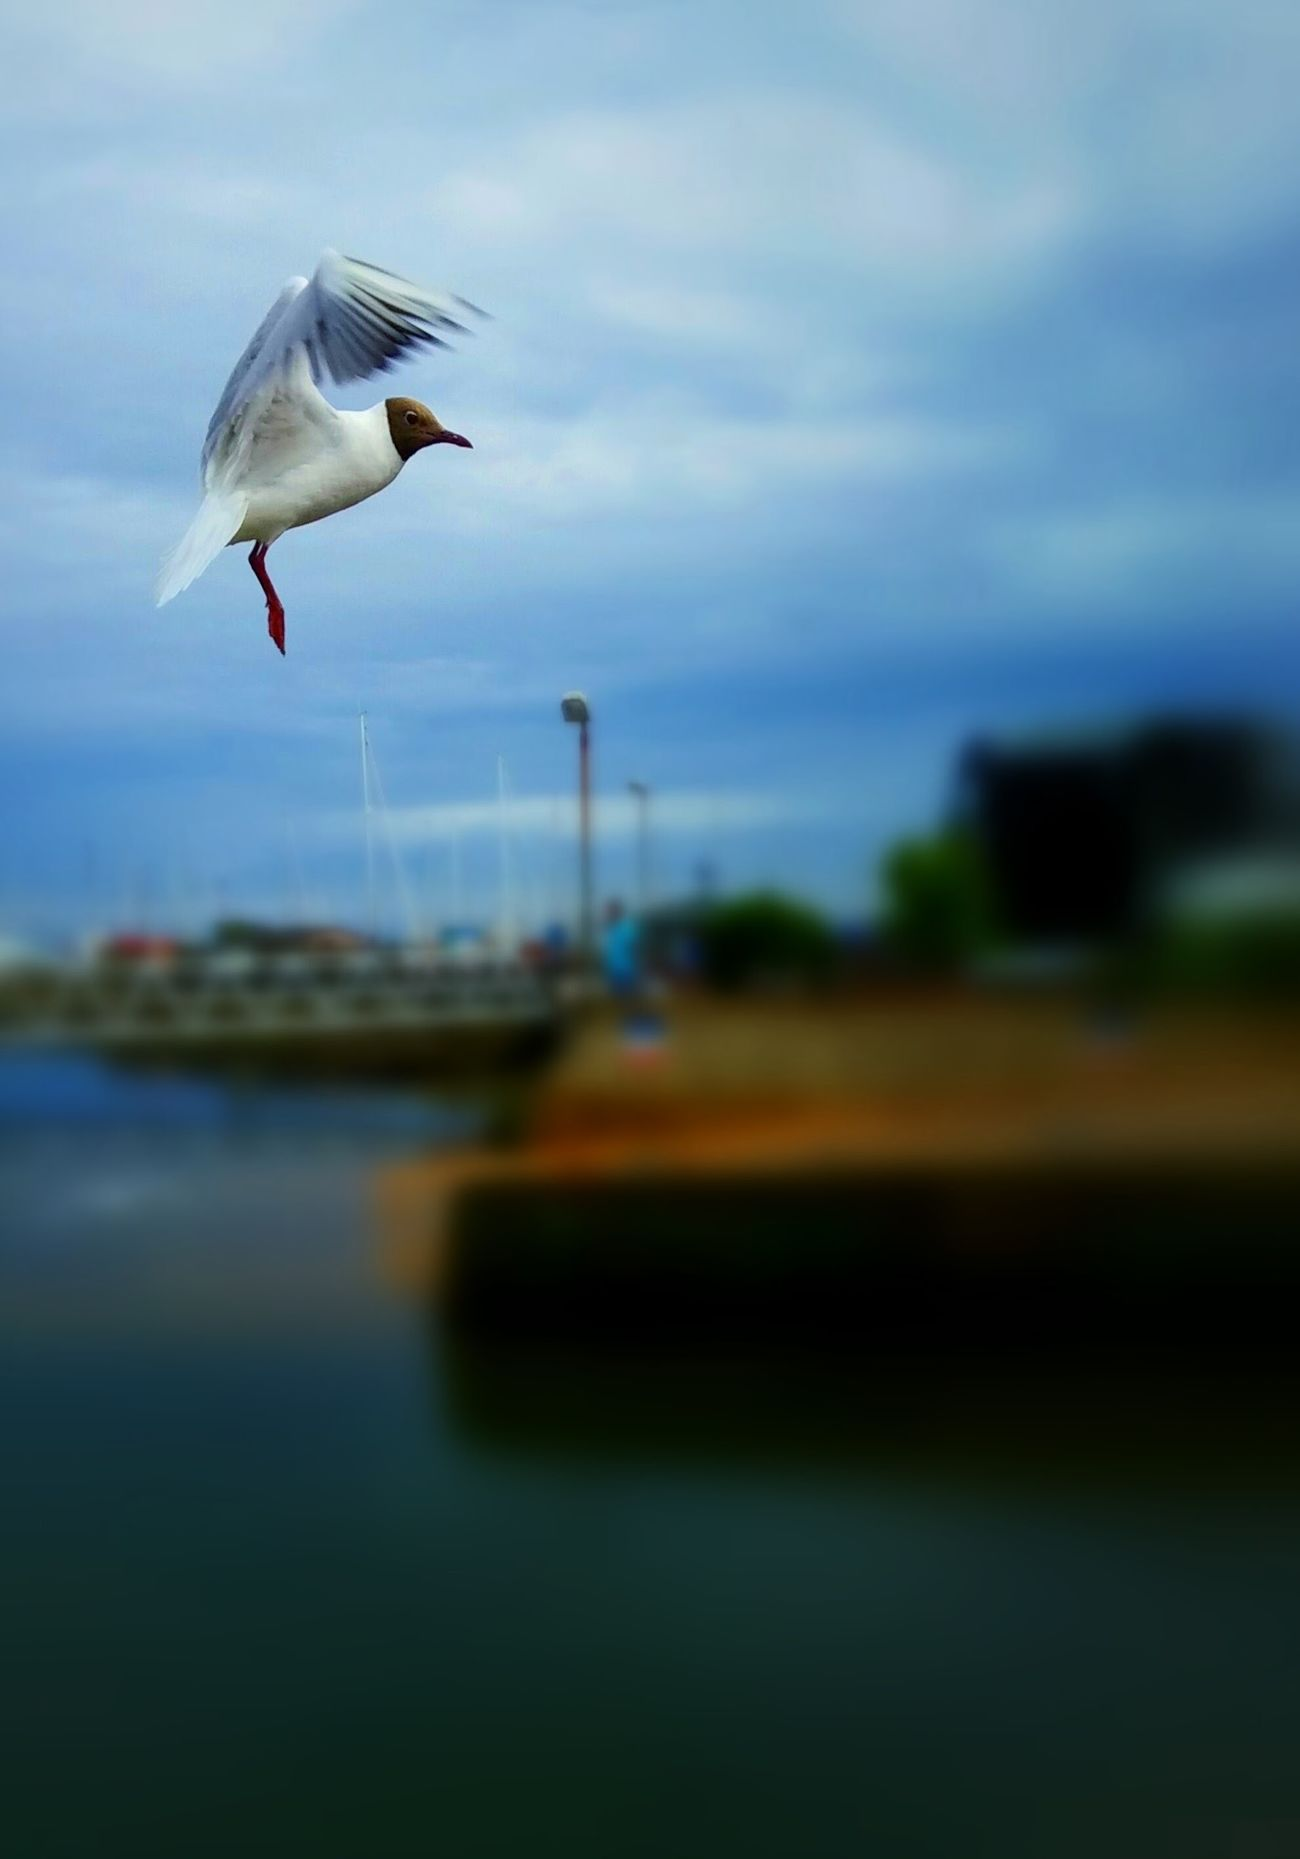 Bird Photography Birds_collection Birds Of EyeEm  Stoping Time Inthemoment Nature Photography Beauty In Nature